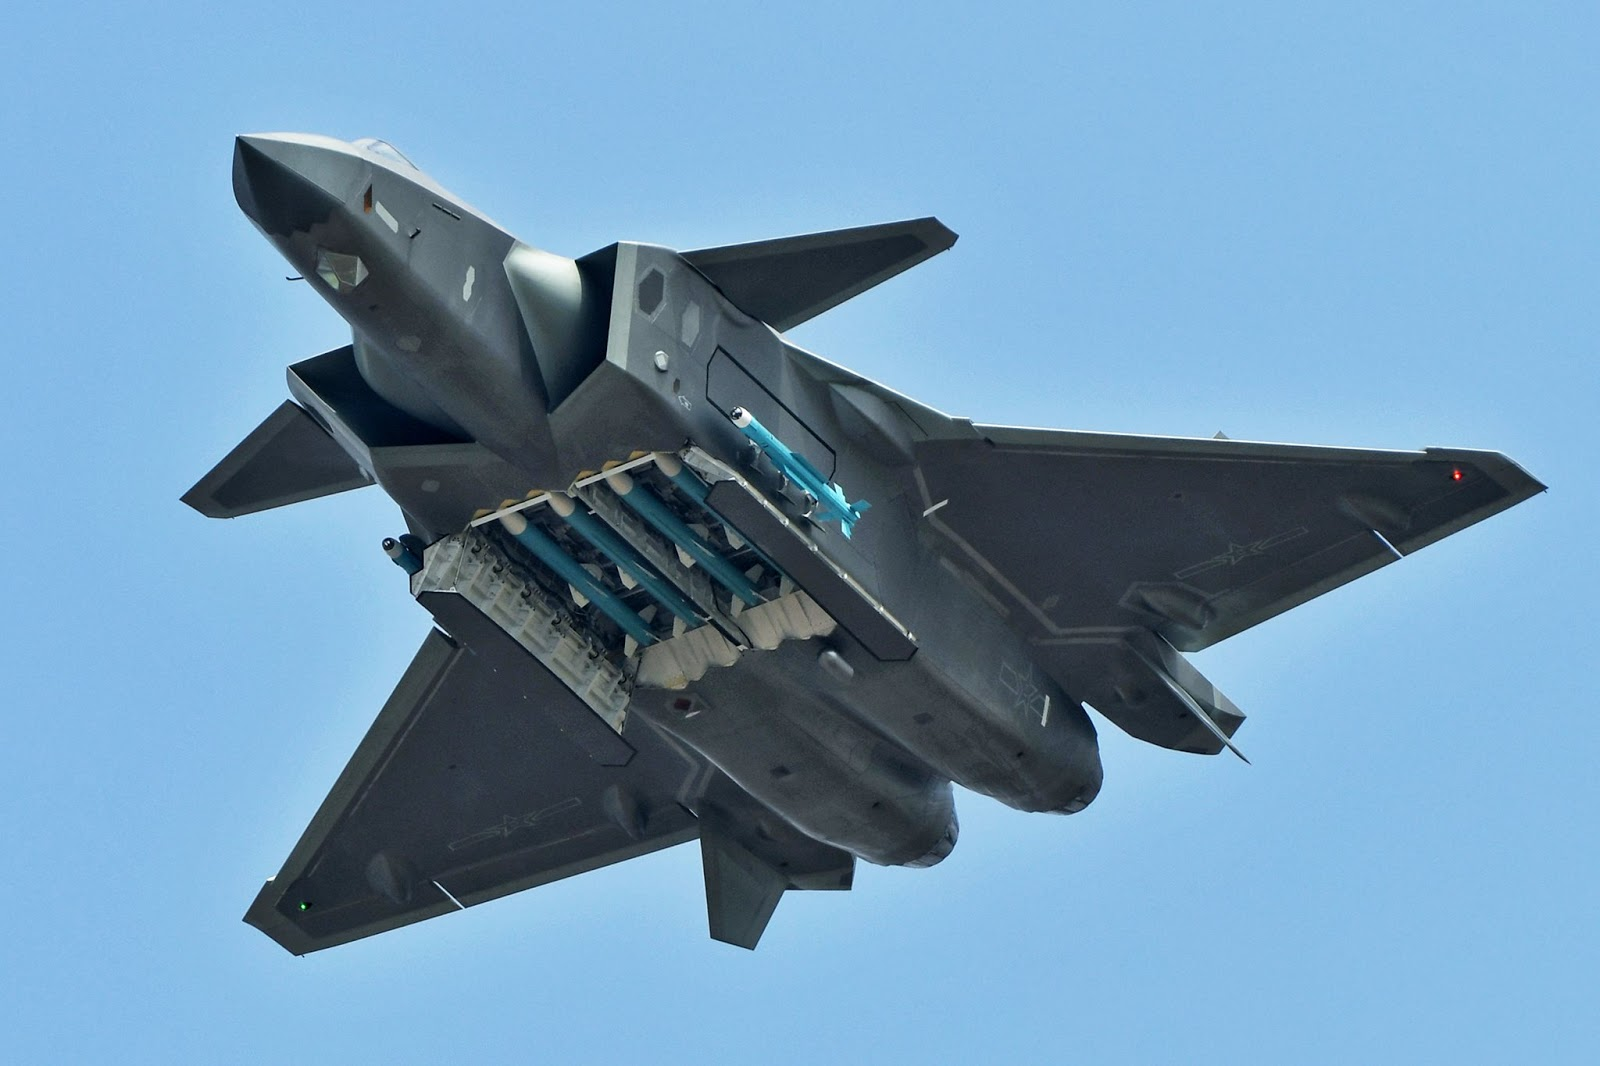 Chinese Chengdu J-20 stealth fighter - Page 7 46095551_901380123400022_5486678978129297408_o